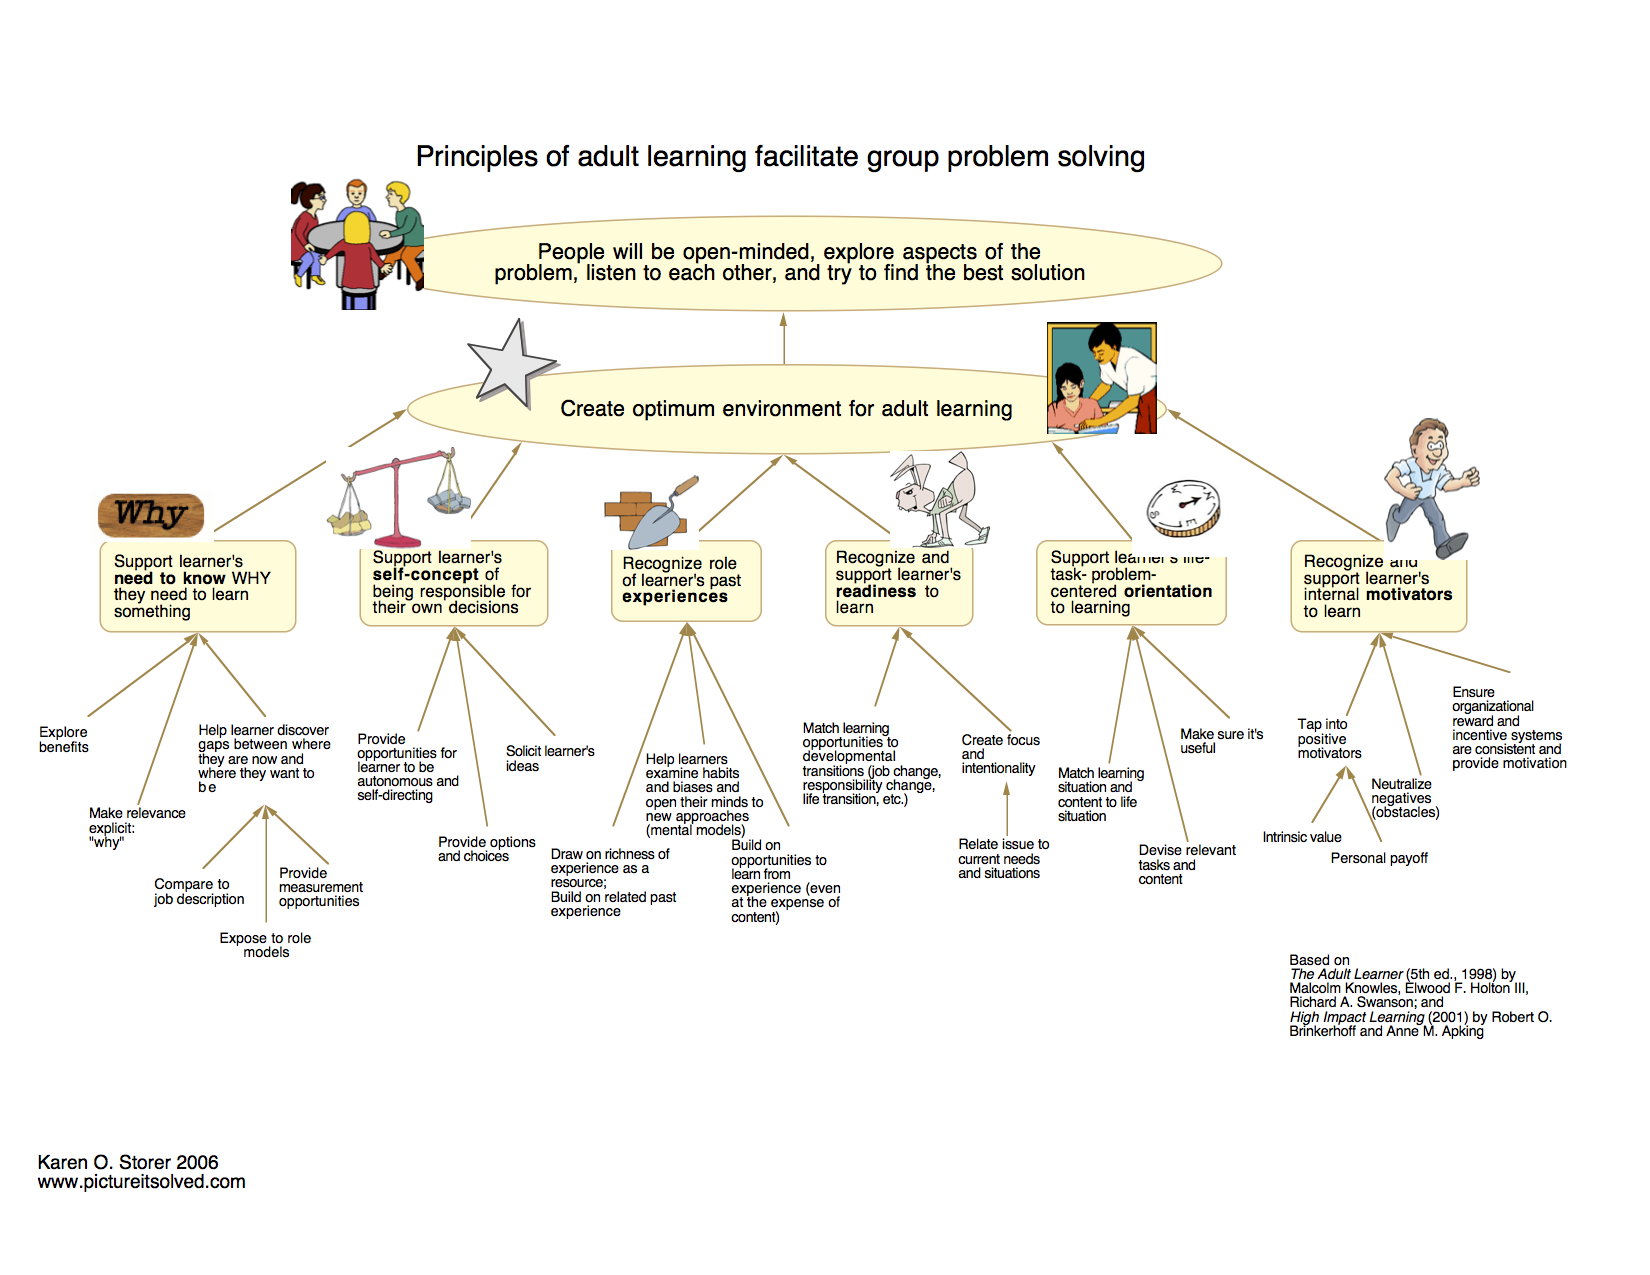 Causal mapping picture it solved causal map illustrating application of adult learning principles pooptronica